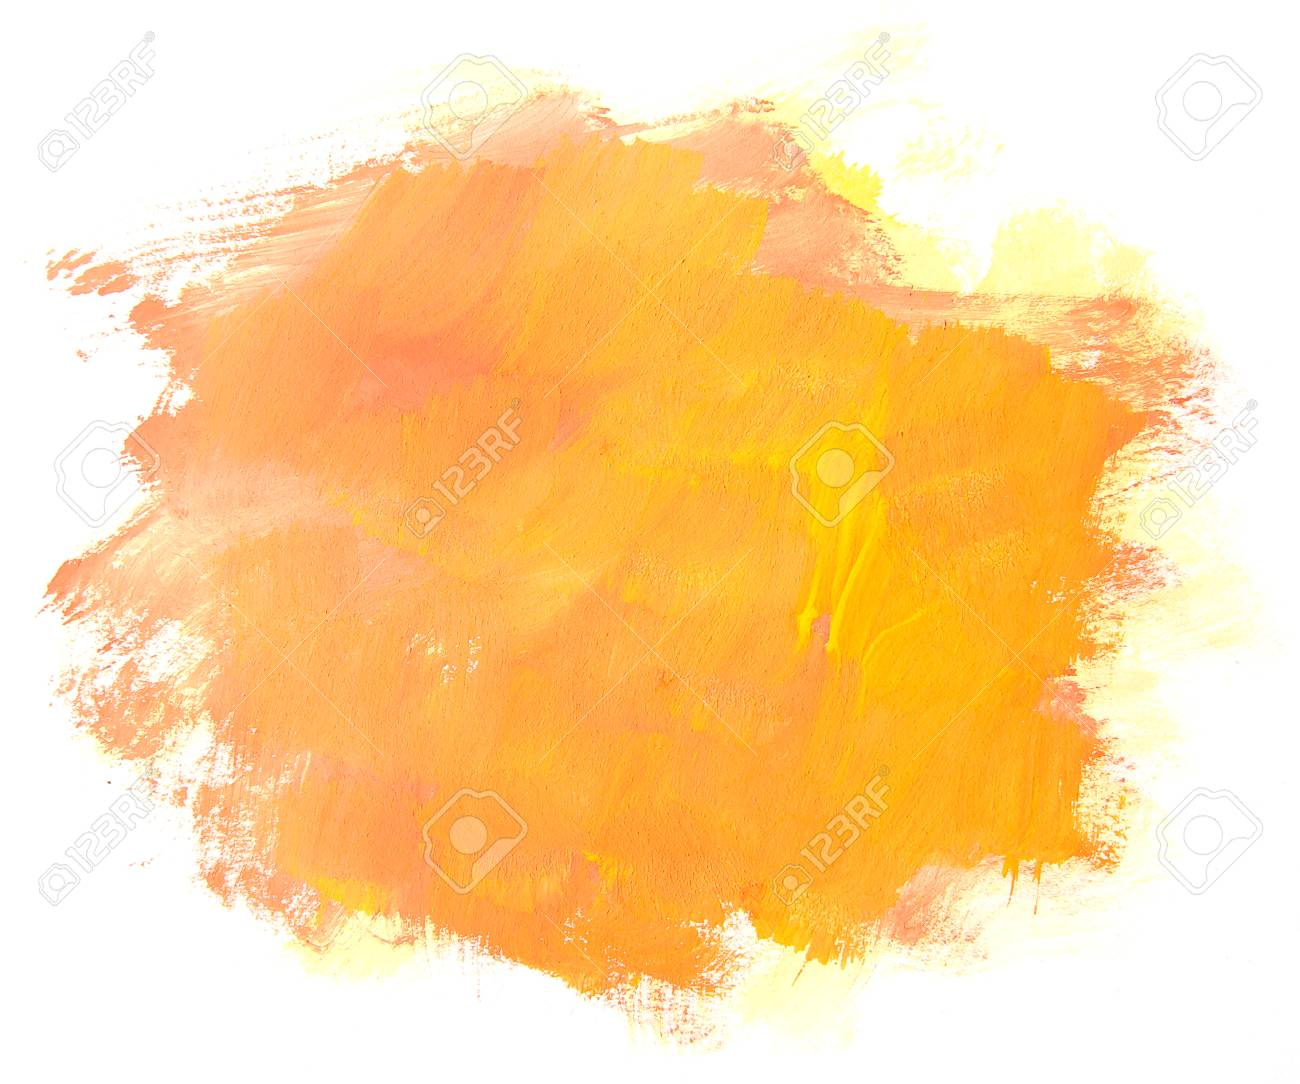 Abstract Orange Painting Isolated On White Background Artistic